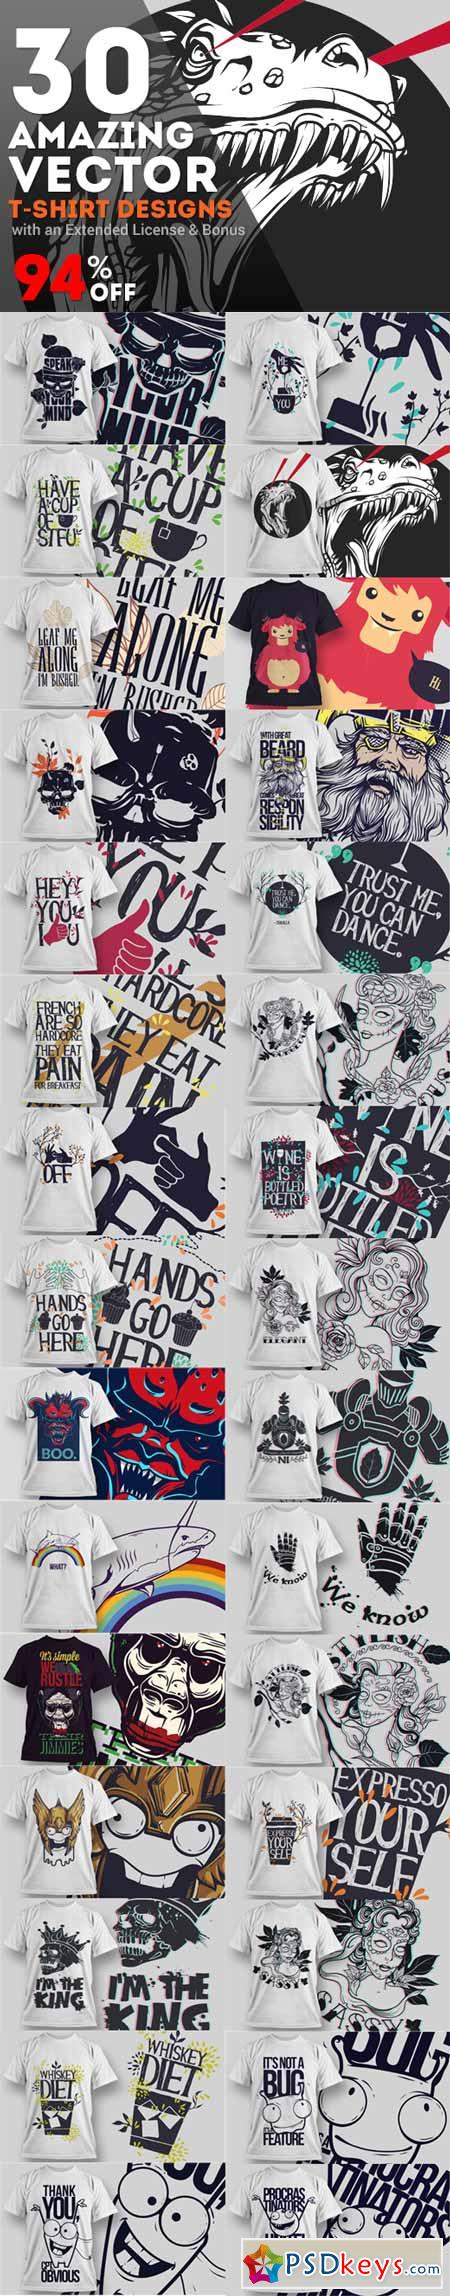 T shirt design 7 25xeps - 30 Amazing Vector T Shirt Designs With An Extended License Bonus